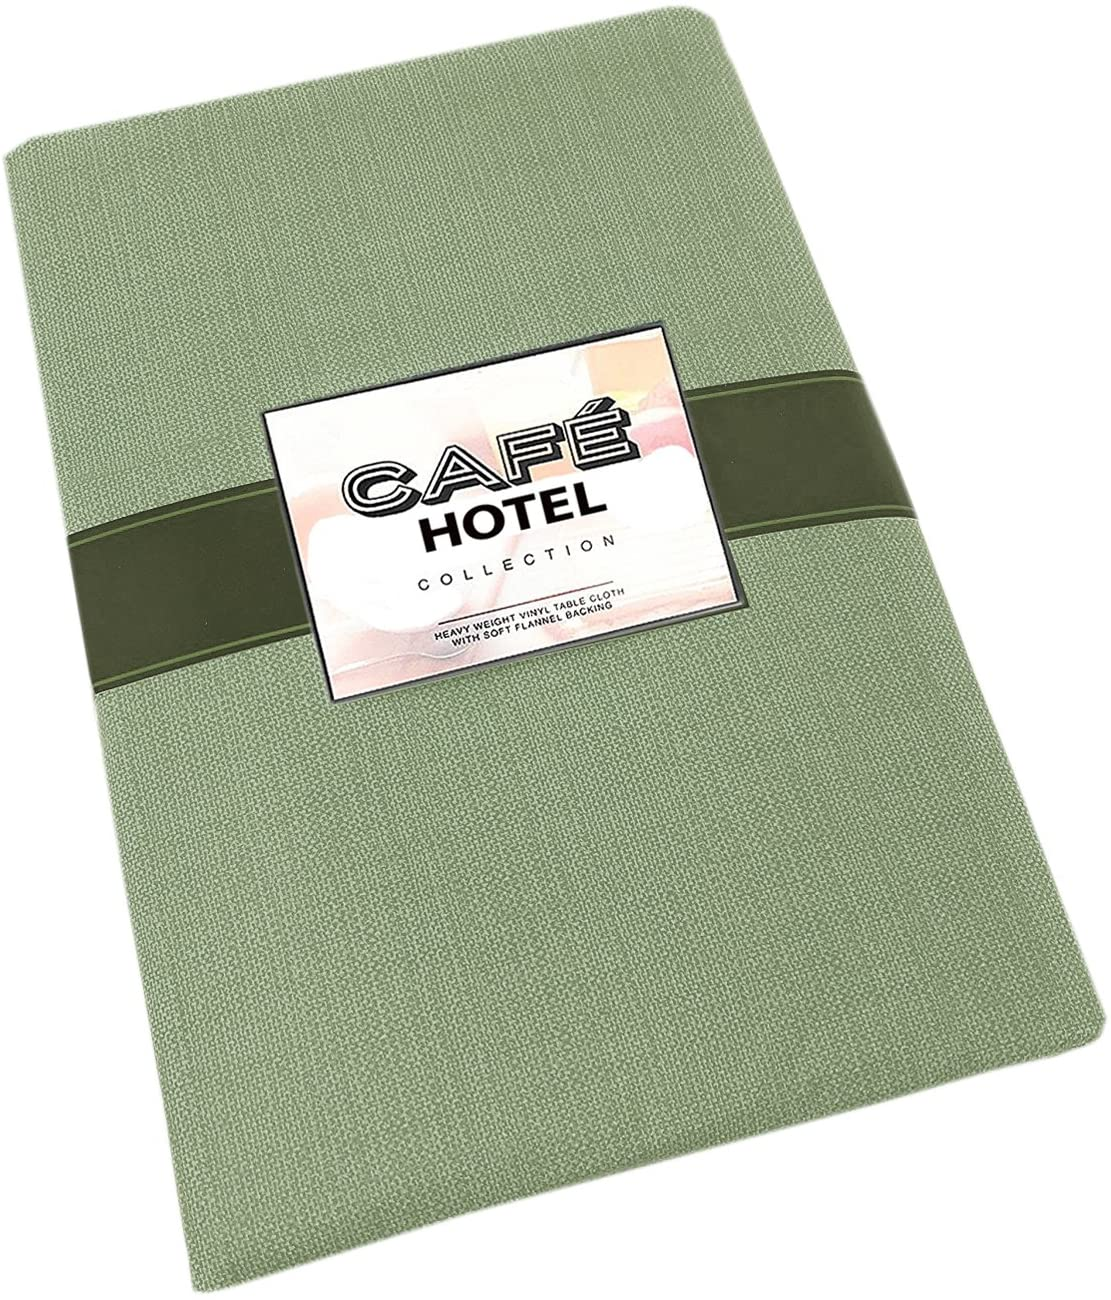 Cafe Hotel Linen Look Solid Color Heavy 4 Gauge Vinyl Flannel Backed Tablecloth, Indoor/Outdoor Wipe Clean Tablecloth, 60 Inch x 120 Inch Oblong/Rectangle, Sage